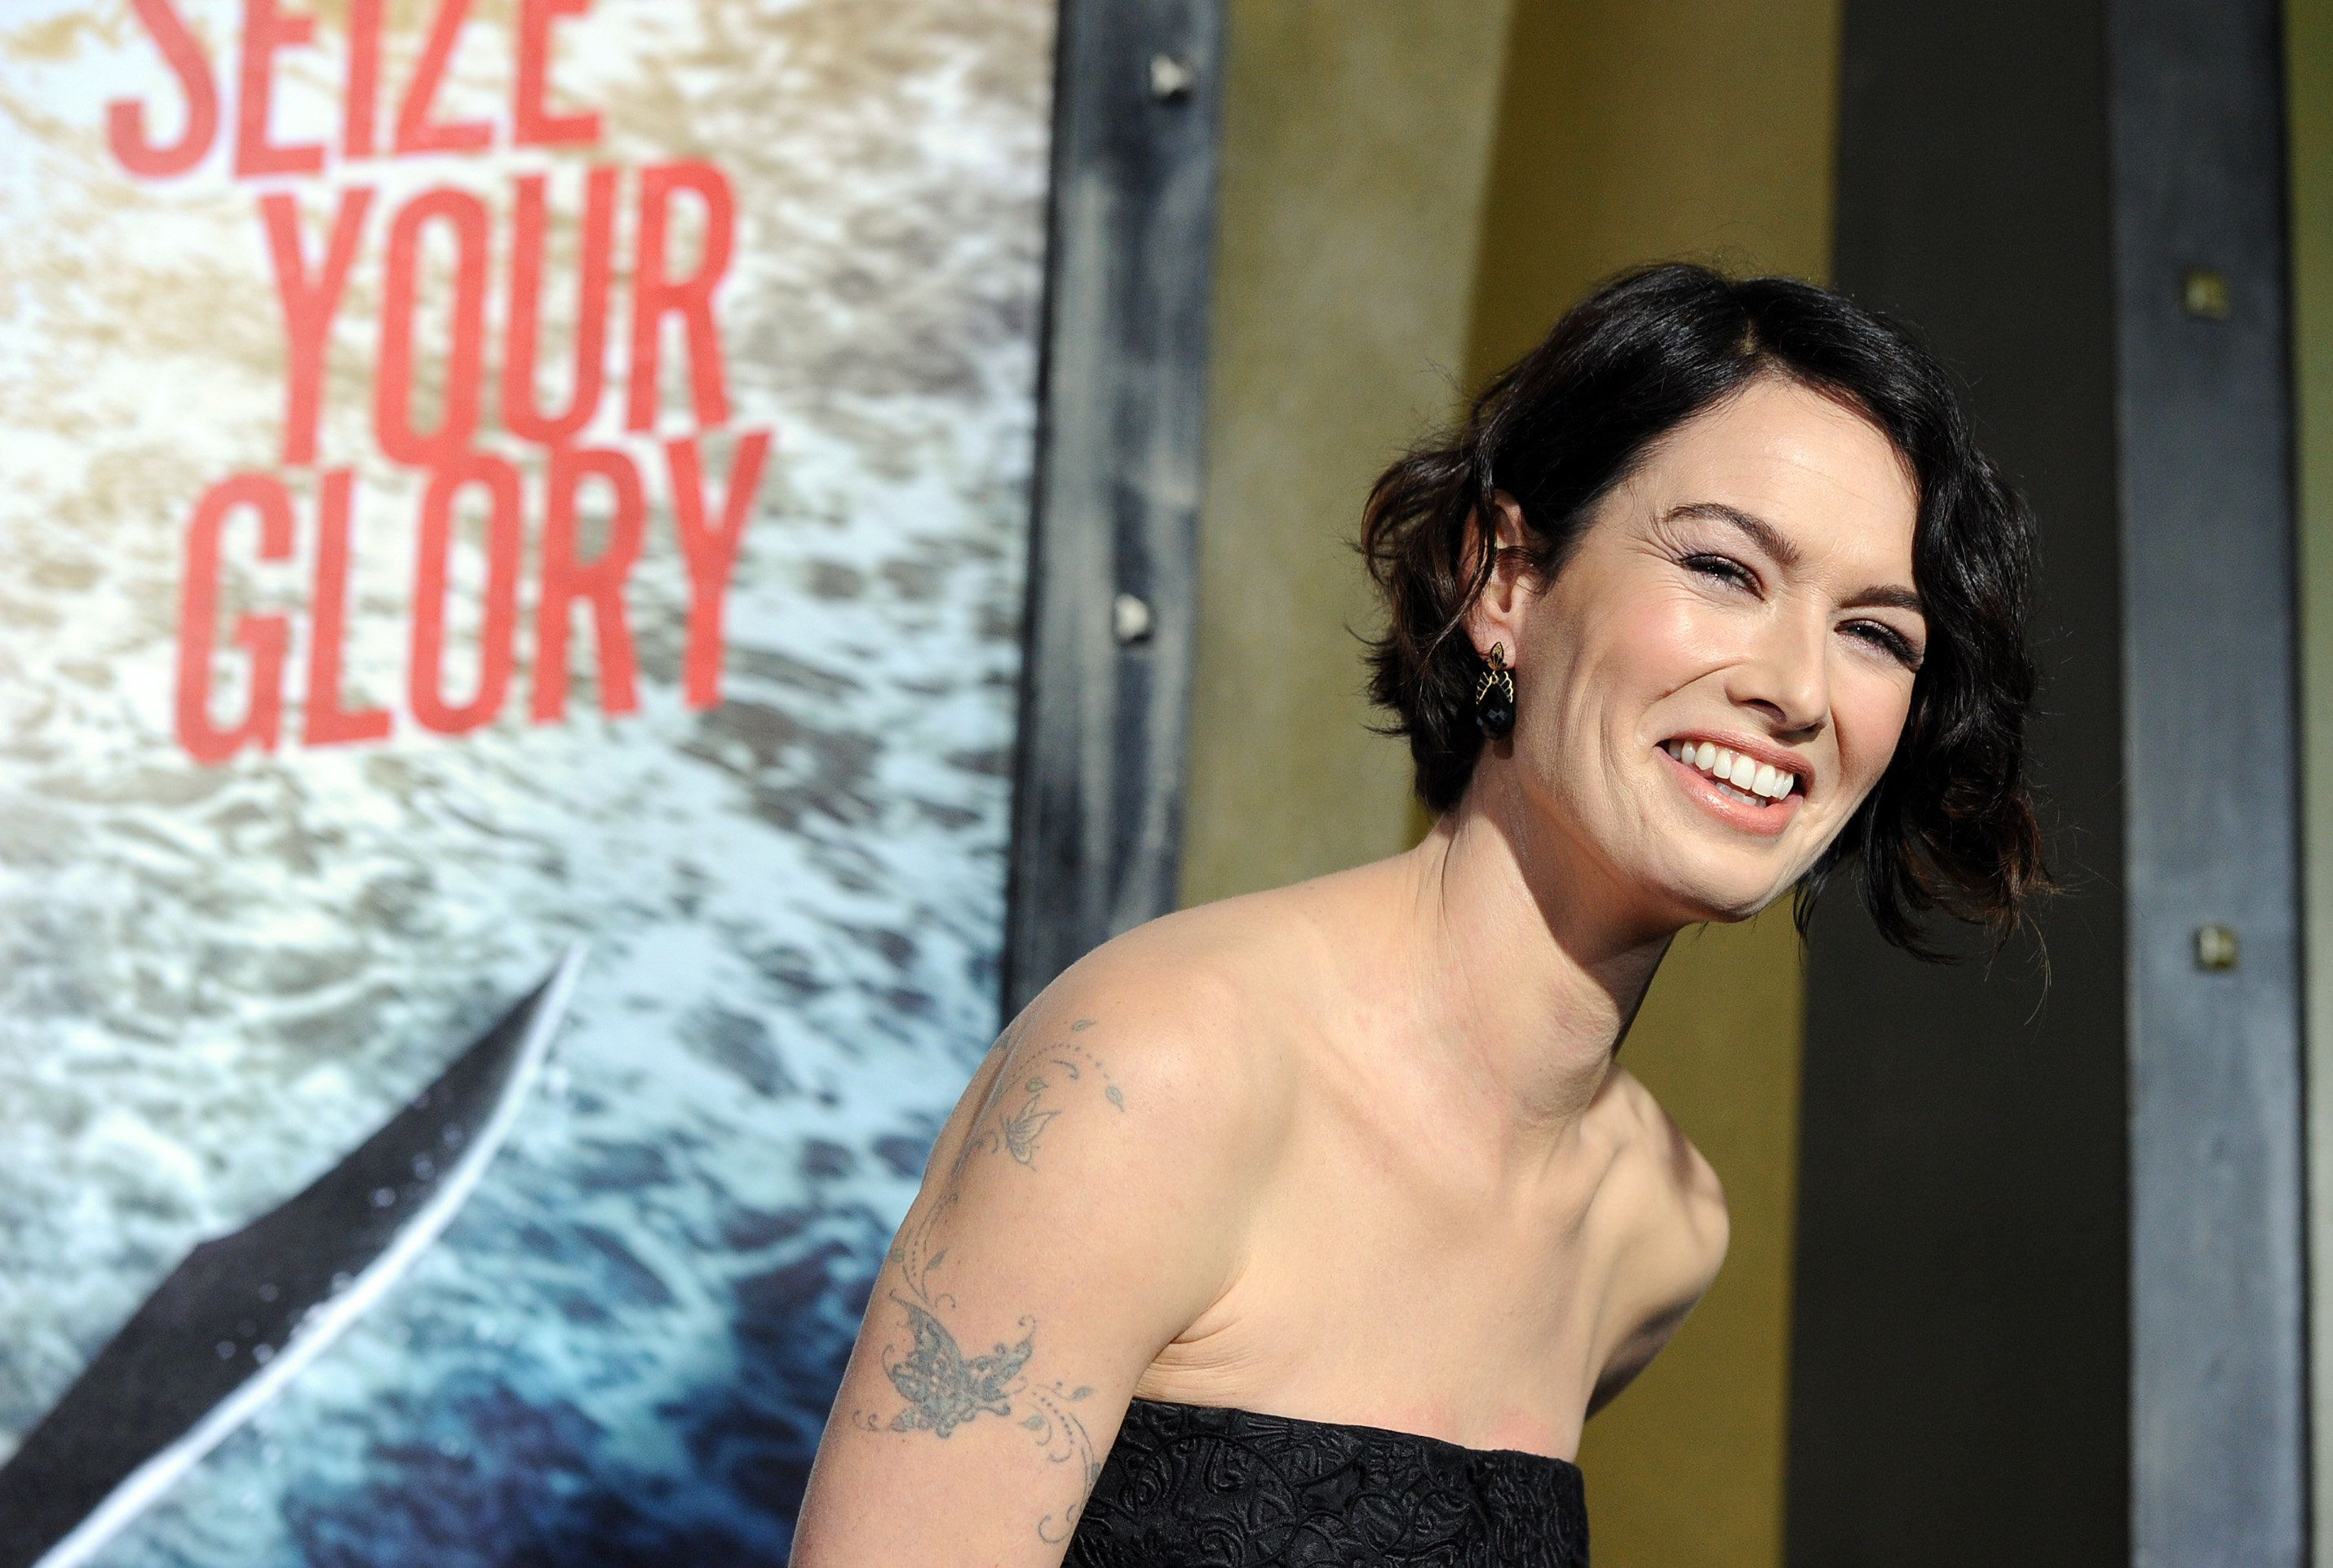 HOLLYWOOD, CA - MARCH 04:  Actress Lena Headey attends the premiere of Warner Bros. Pictures and Legendary Pictures' '300: Rise Of An Empire' at TCL Chinese Theatre on March 4, 2014 in Hollywood, California.  (Photo by Kevin Winter/Getty Images)